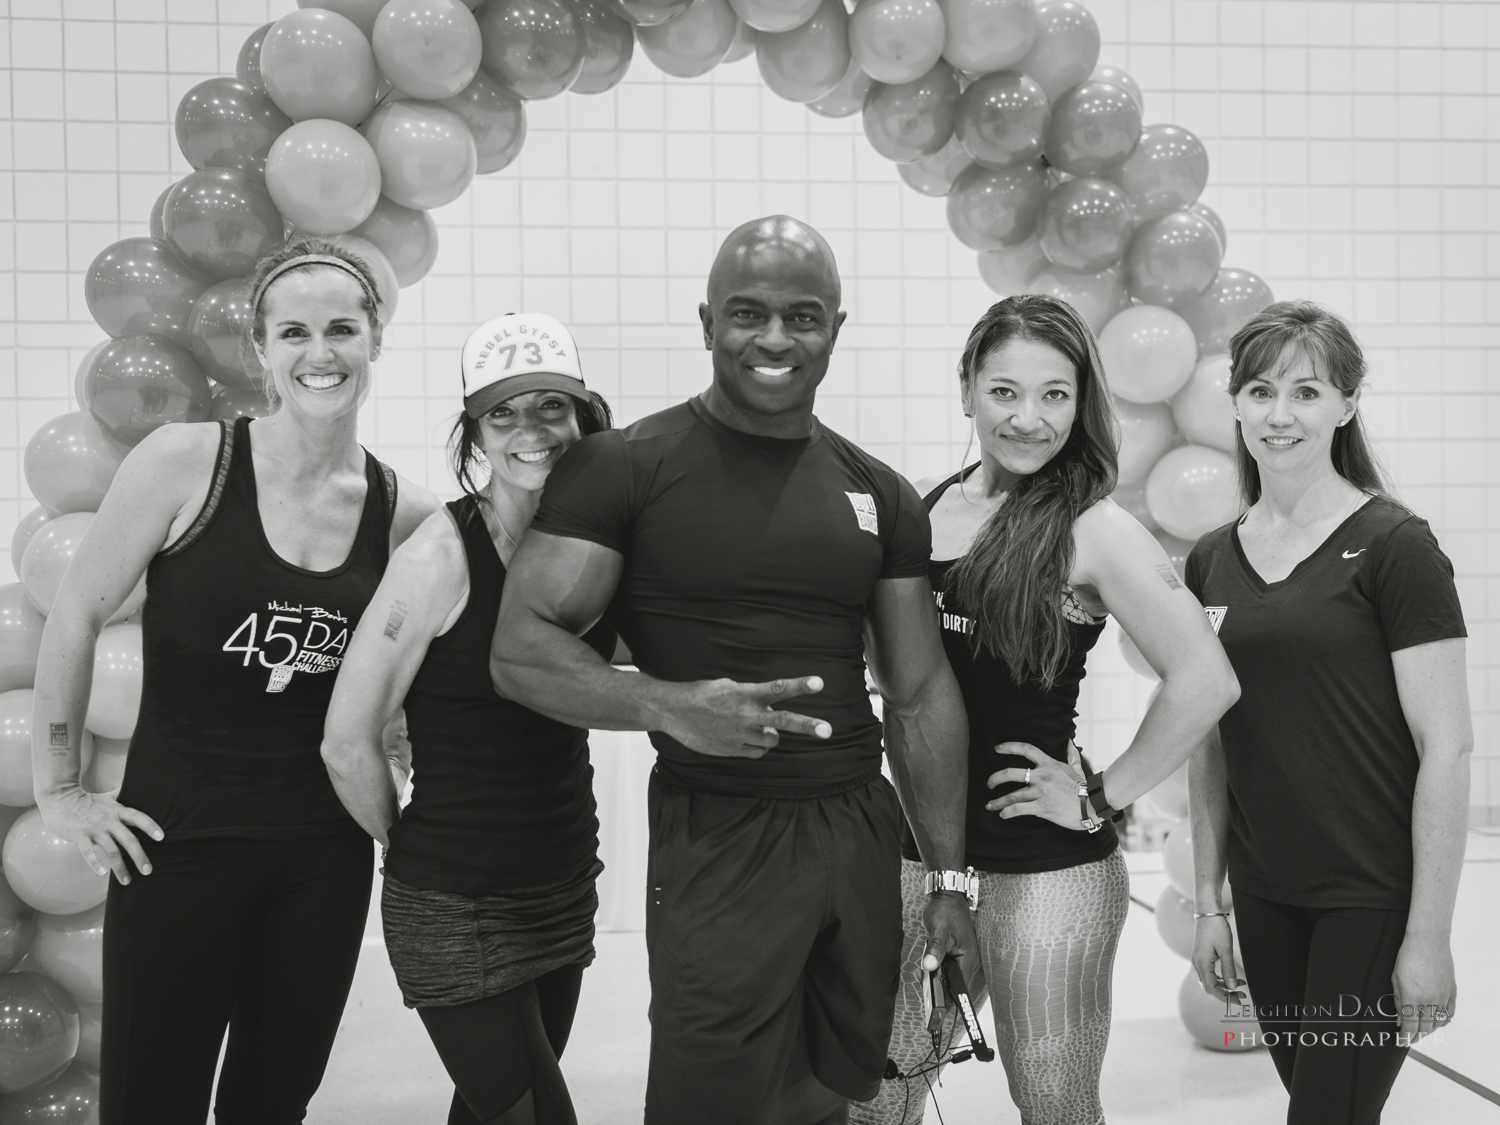 Fitness Innovator, Michael Banks and his Body by Banks crew are all smiles after a great workout